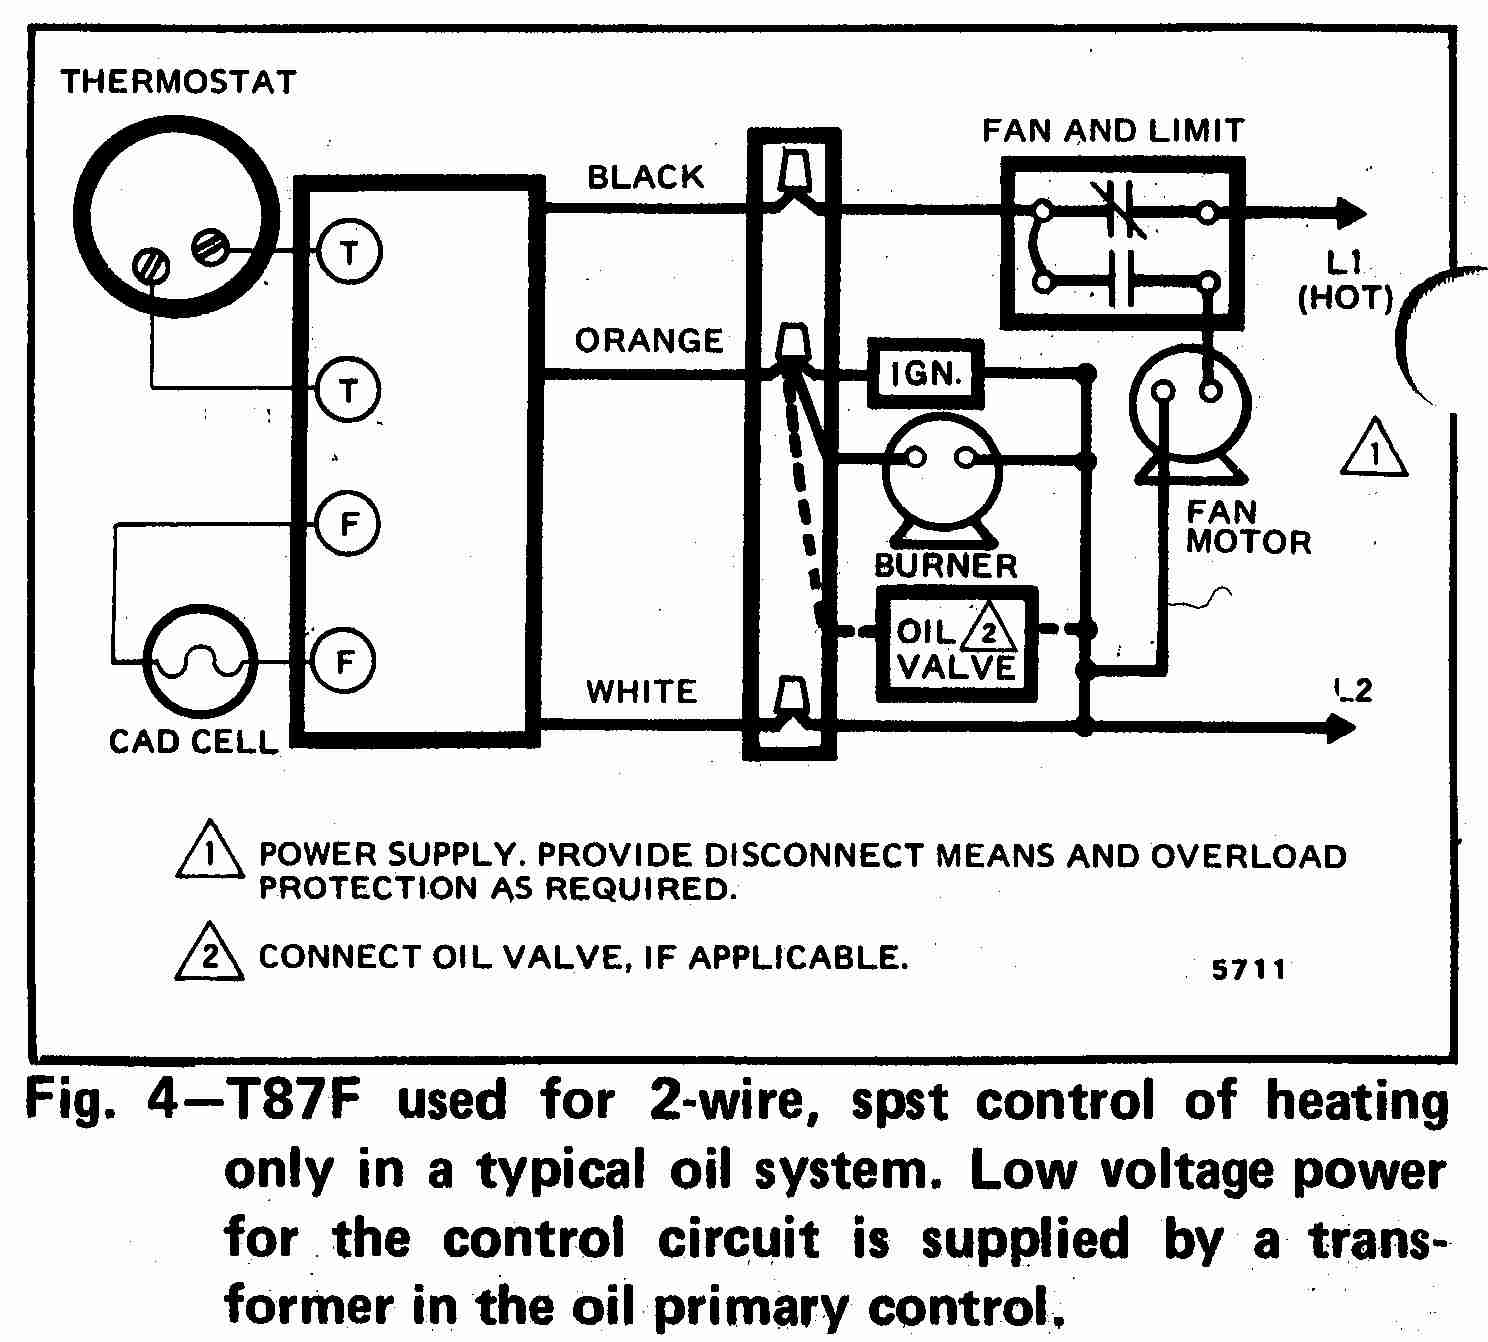 TT_T87F_0002_2W_DJF hvac control wiring diagram hvac compressor wiring diagram \u2022 free honeywell pressure switch wiring diagram at gsmx.co